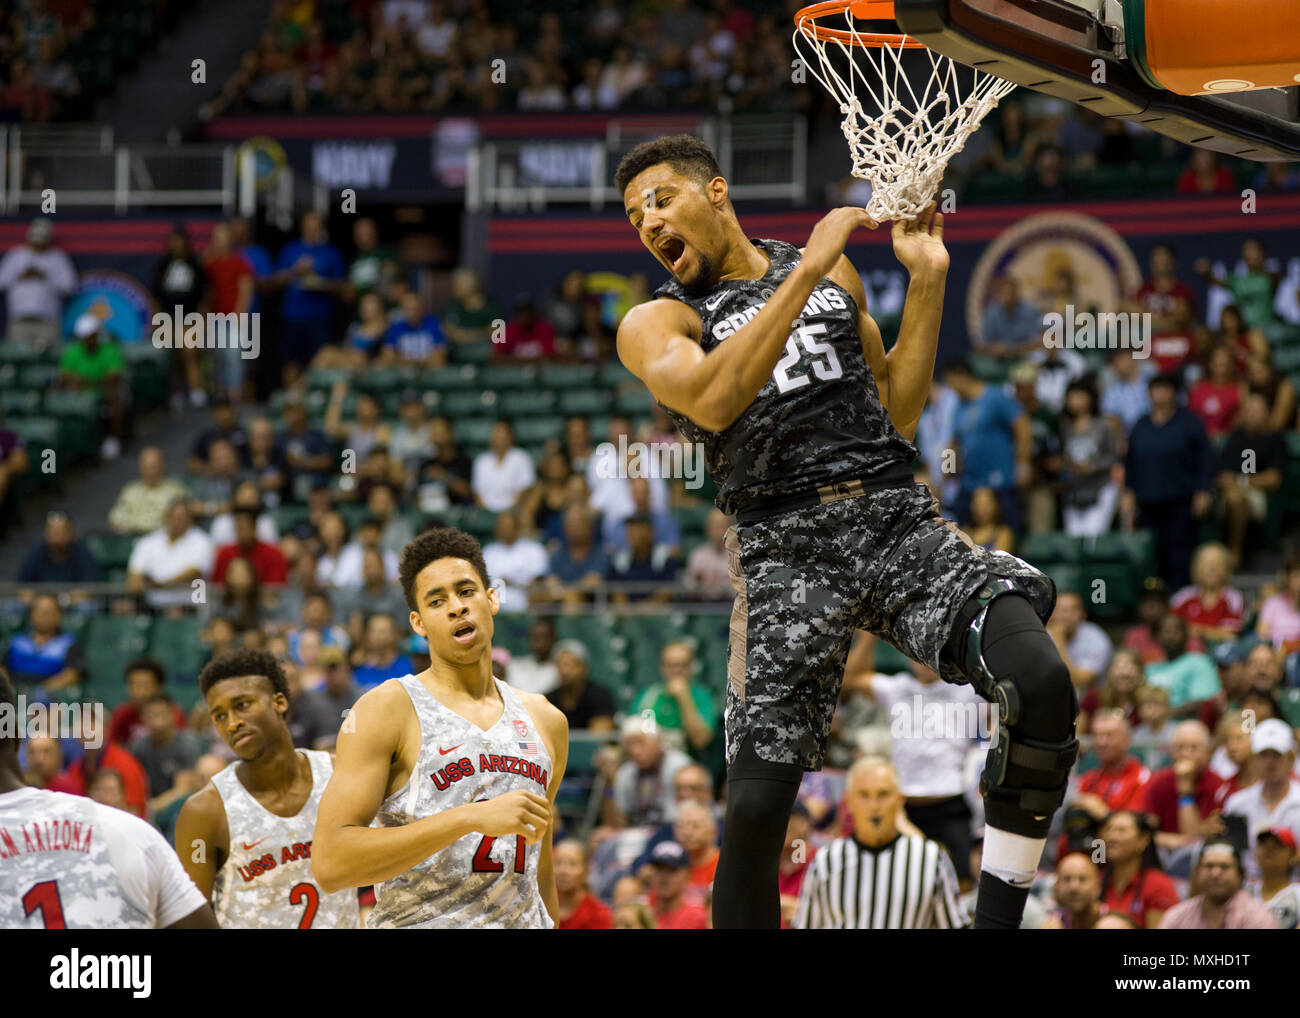 161111-N-AV234-152 (Nov.11, 2016) HONOLULU -- Michigan State Spartan Kenny Goins slam dunks a basket during the 2016 Armed Forces Classic at Hawaii University's Stan Sheriff Center. The Armed Forces Classic switches venues annually to different military locations around the world. 2016 marks the Fifth Annual Armed Forces Classic and is being held in Hawaii to honor the Navy and the 75th anniversary of the attack on Pearl Harbor. (U.S. Navy photo by Petty Officer 2nd Class Somers Steelman/Released) Stock Photo